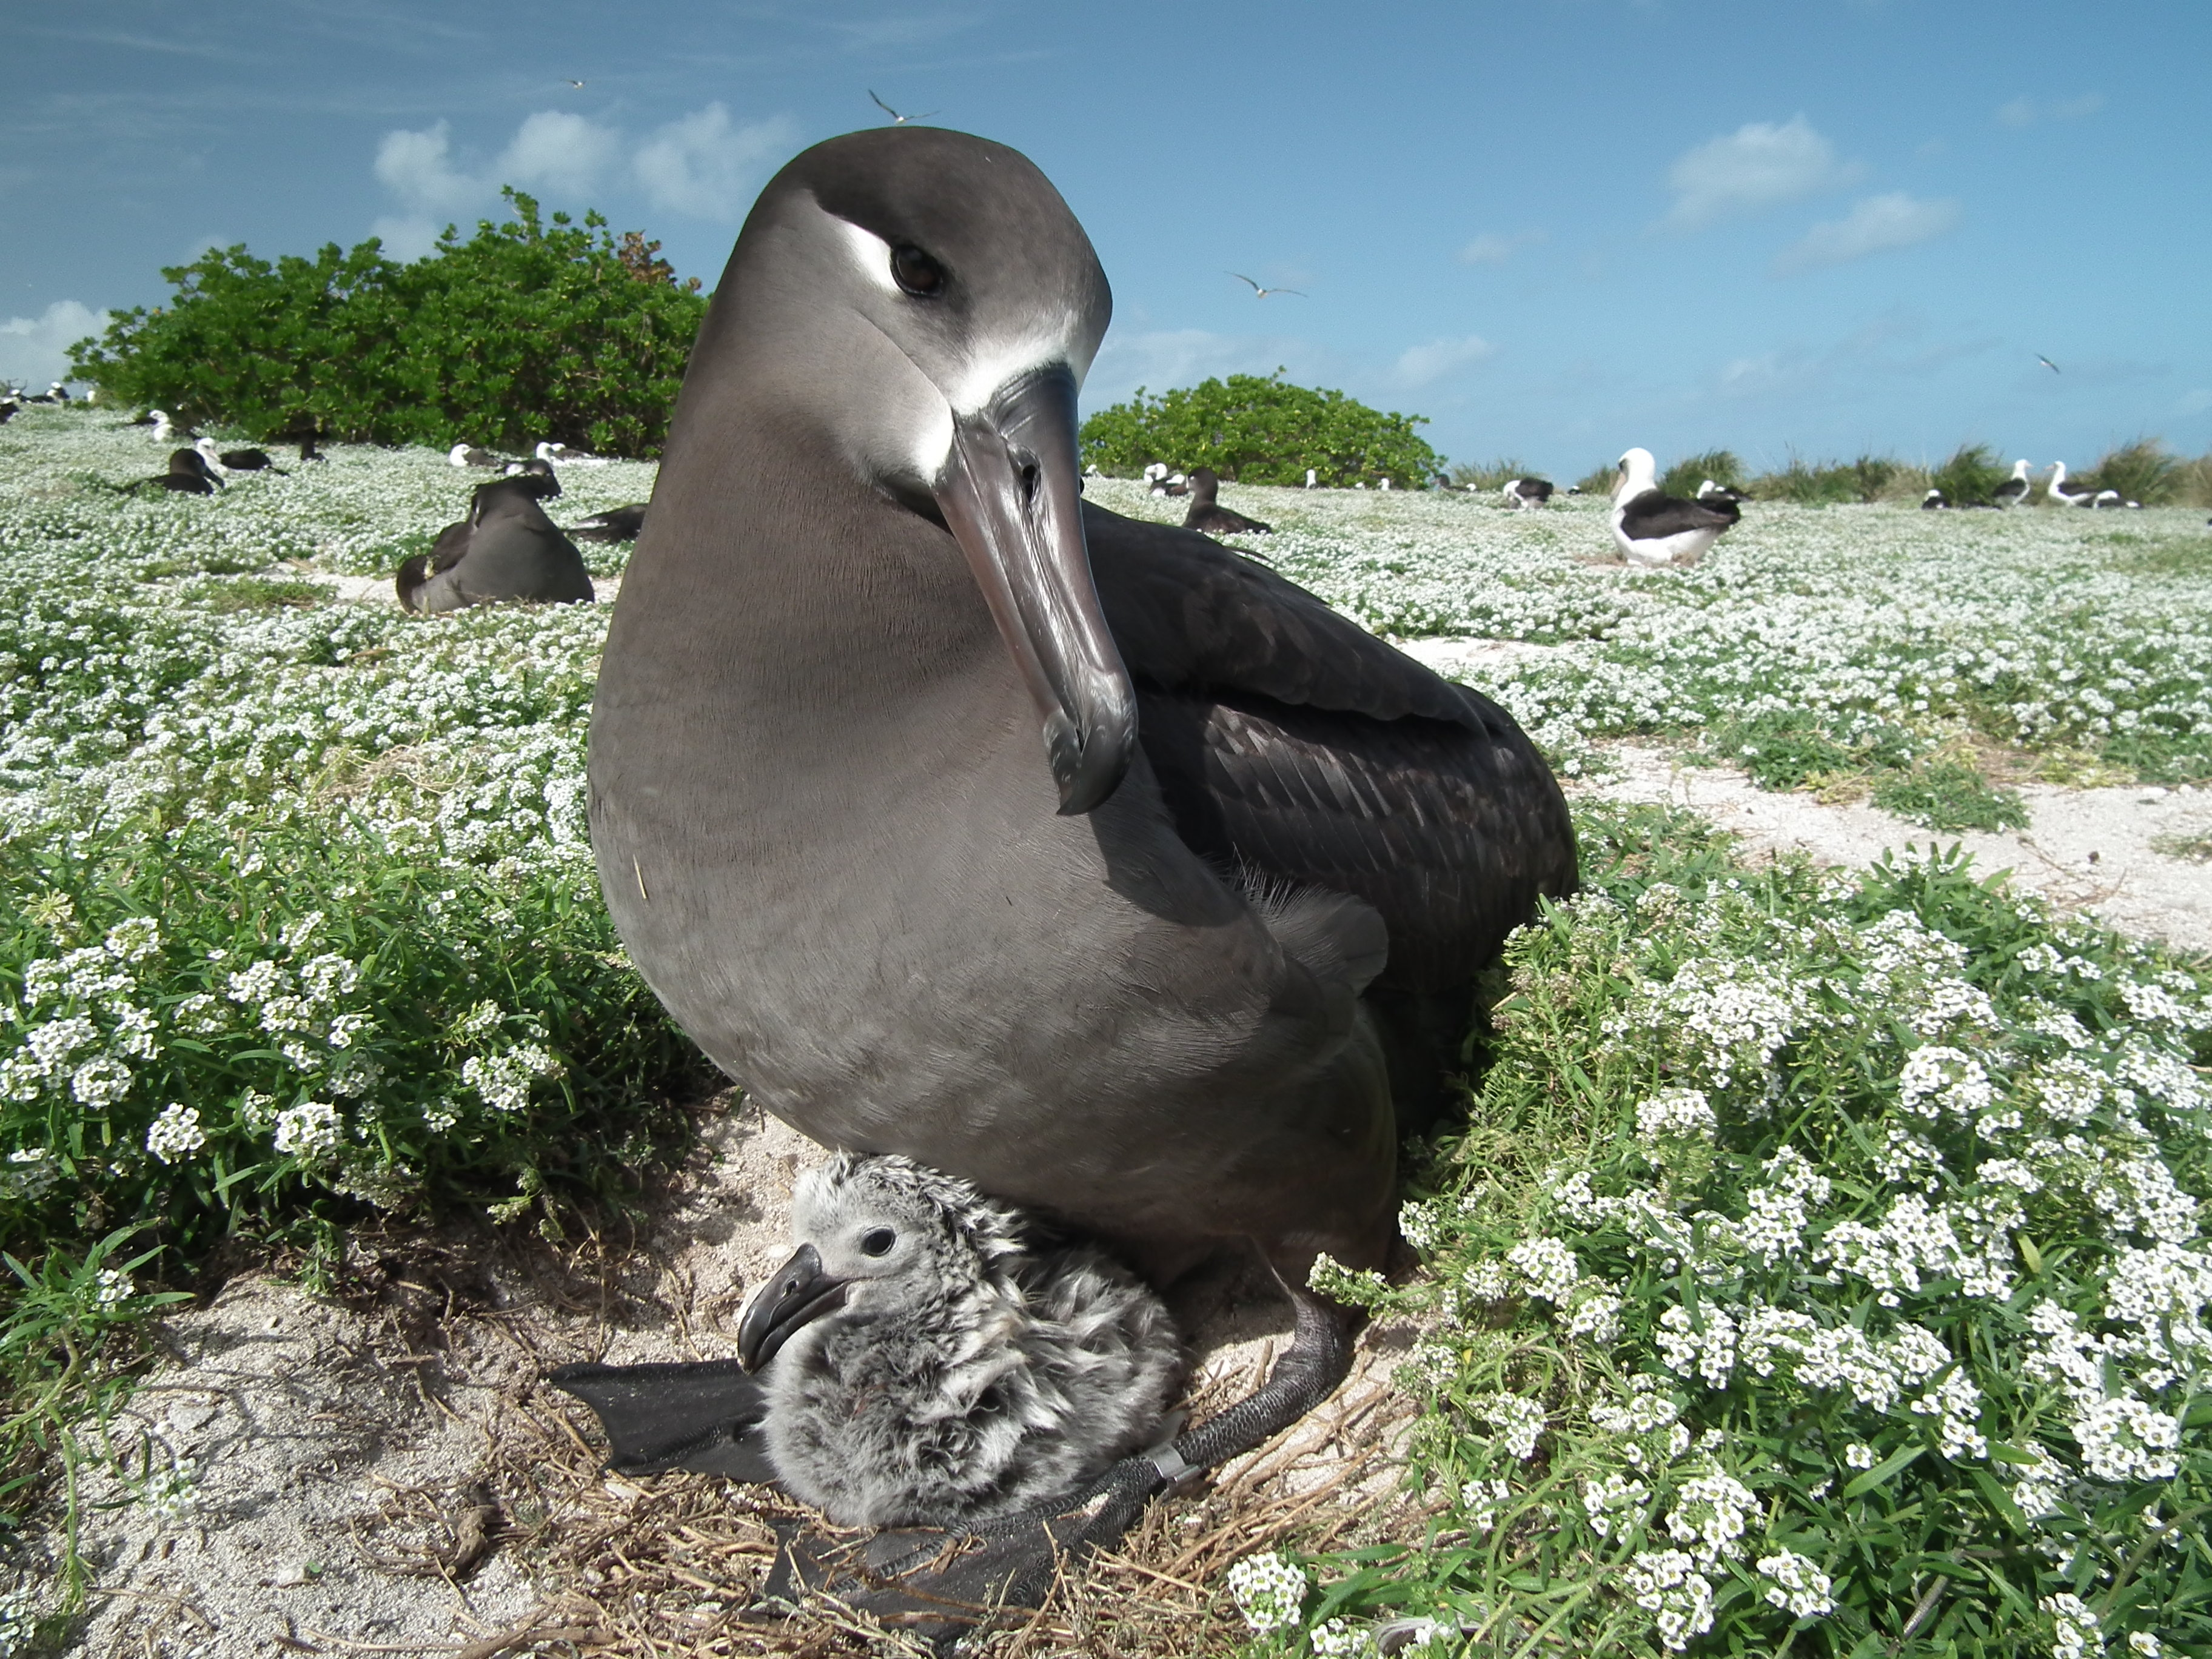 A Black-footed Albatross sits with a chick in the Midway Atoll. Laysan and other Black-footed Albatross are in the background. Wieteke Holthuijzen